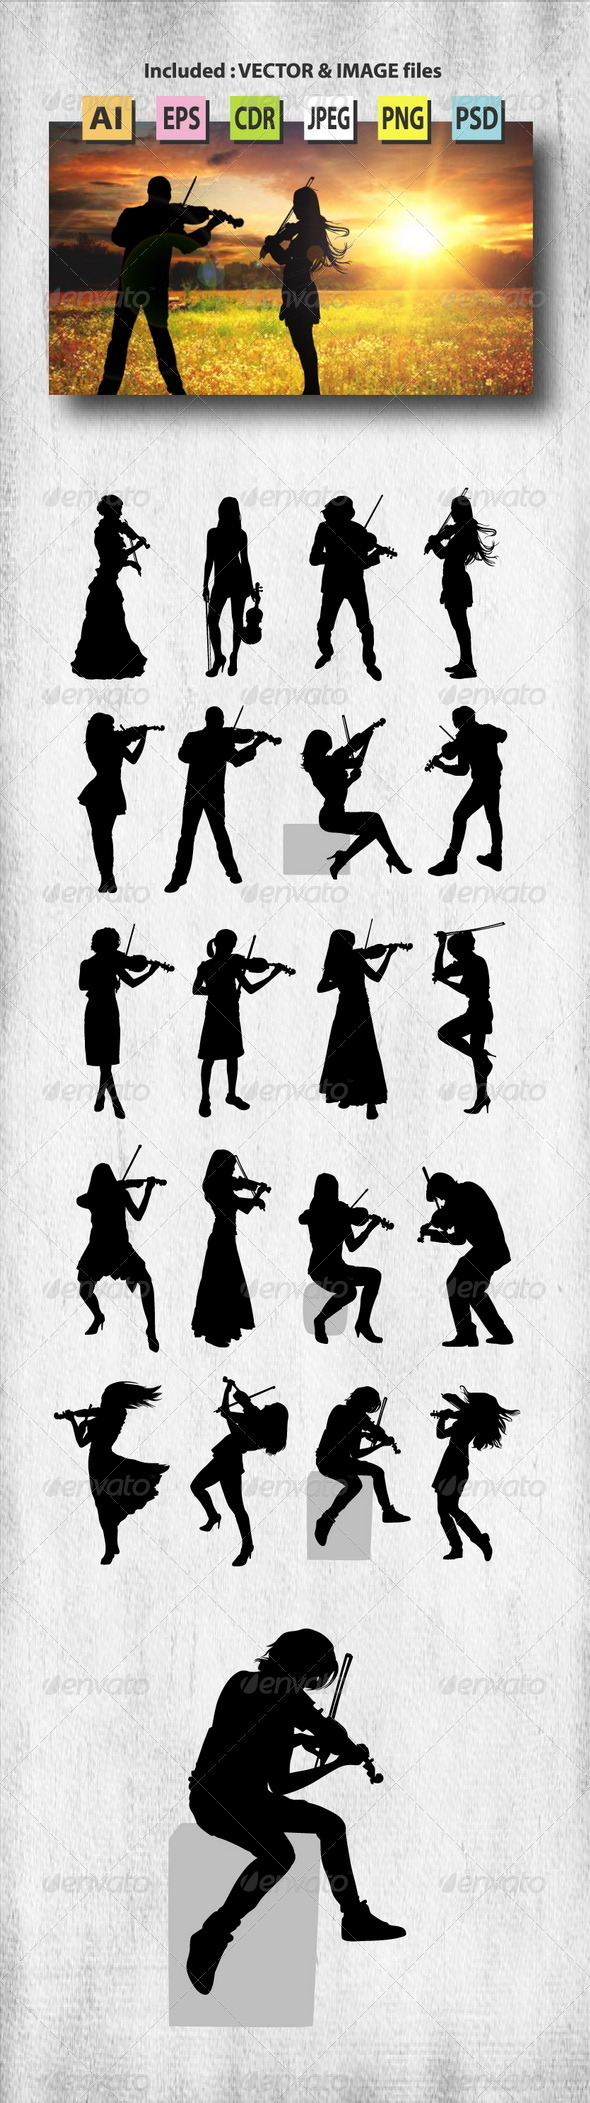 Violinist Silhouettes